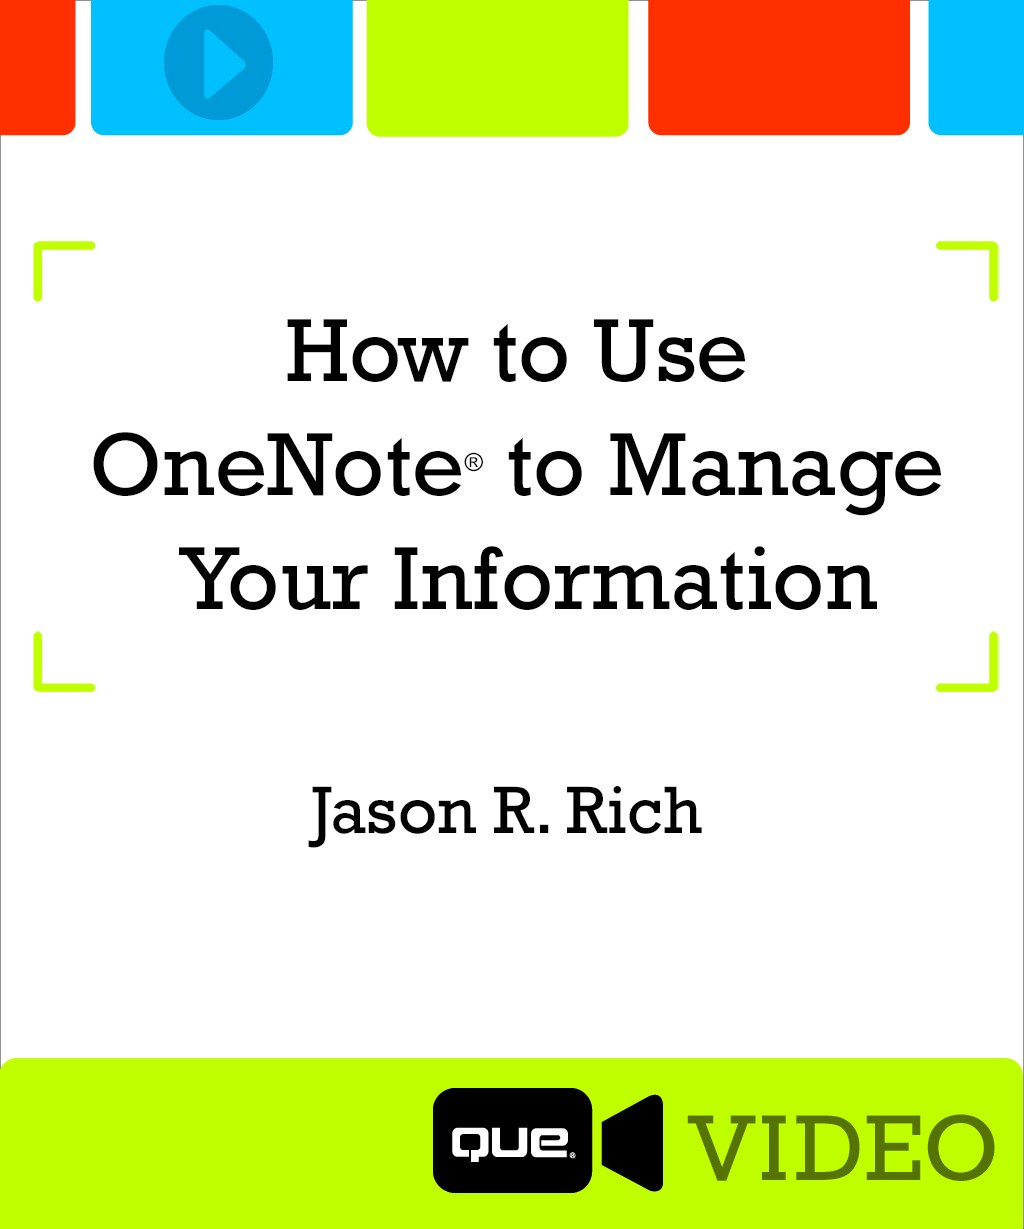 Part 2: Gathering Information and Content with Microsoft OneNote